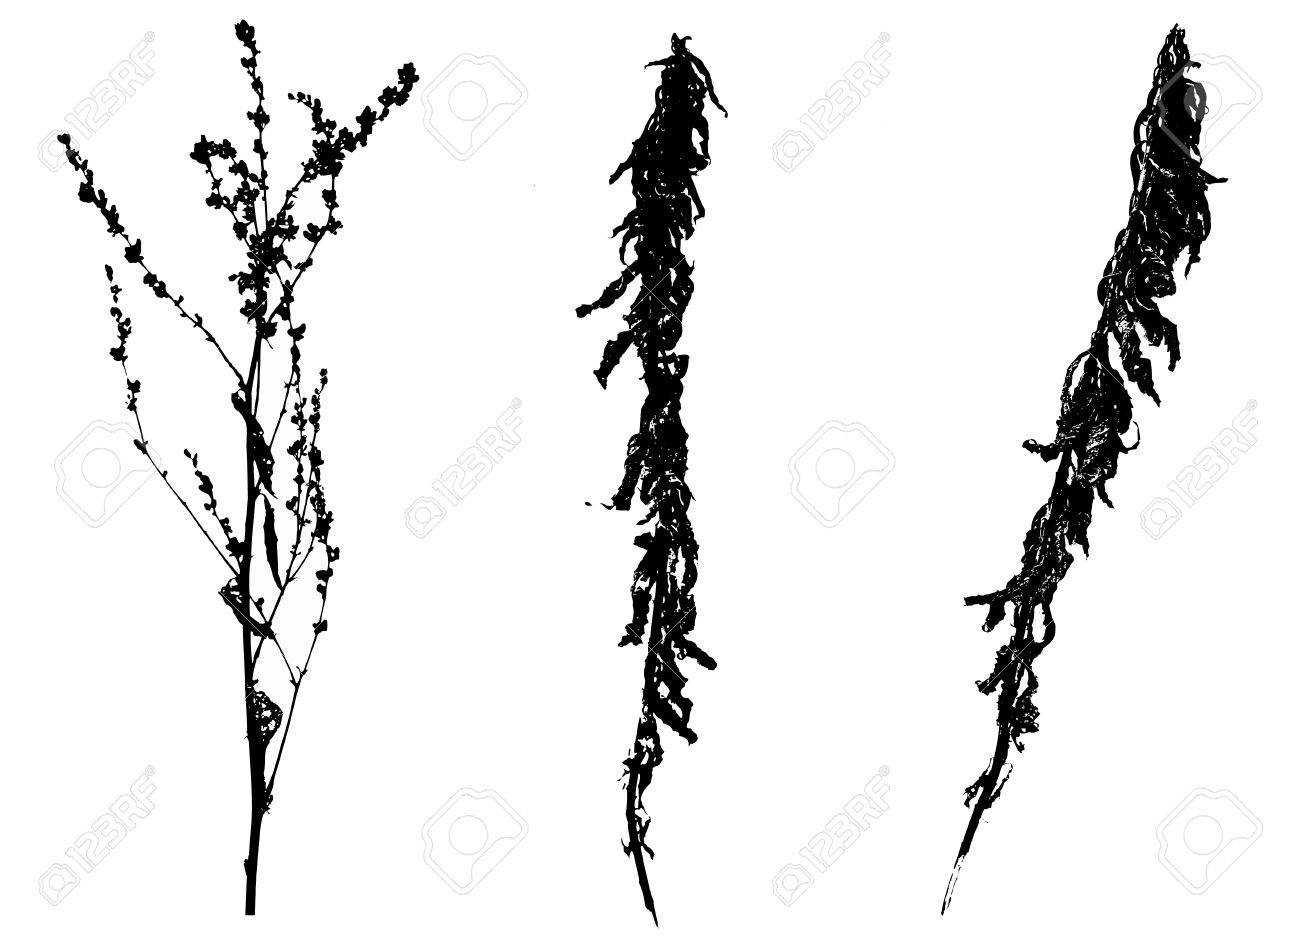 Black spring vectorized flowers on white background Stock Photo - 12988724